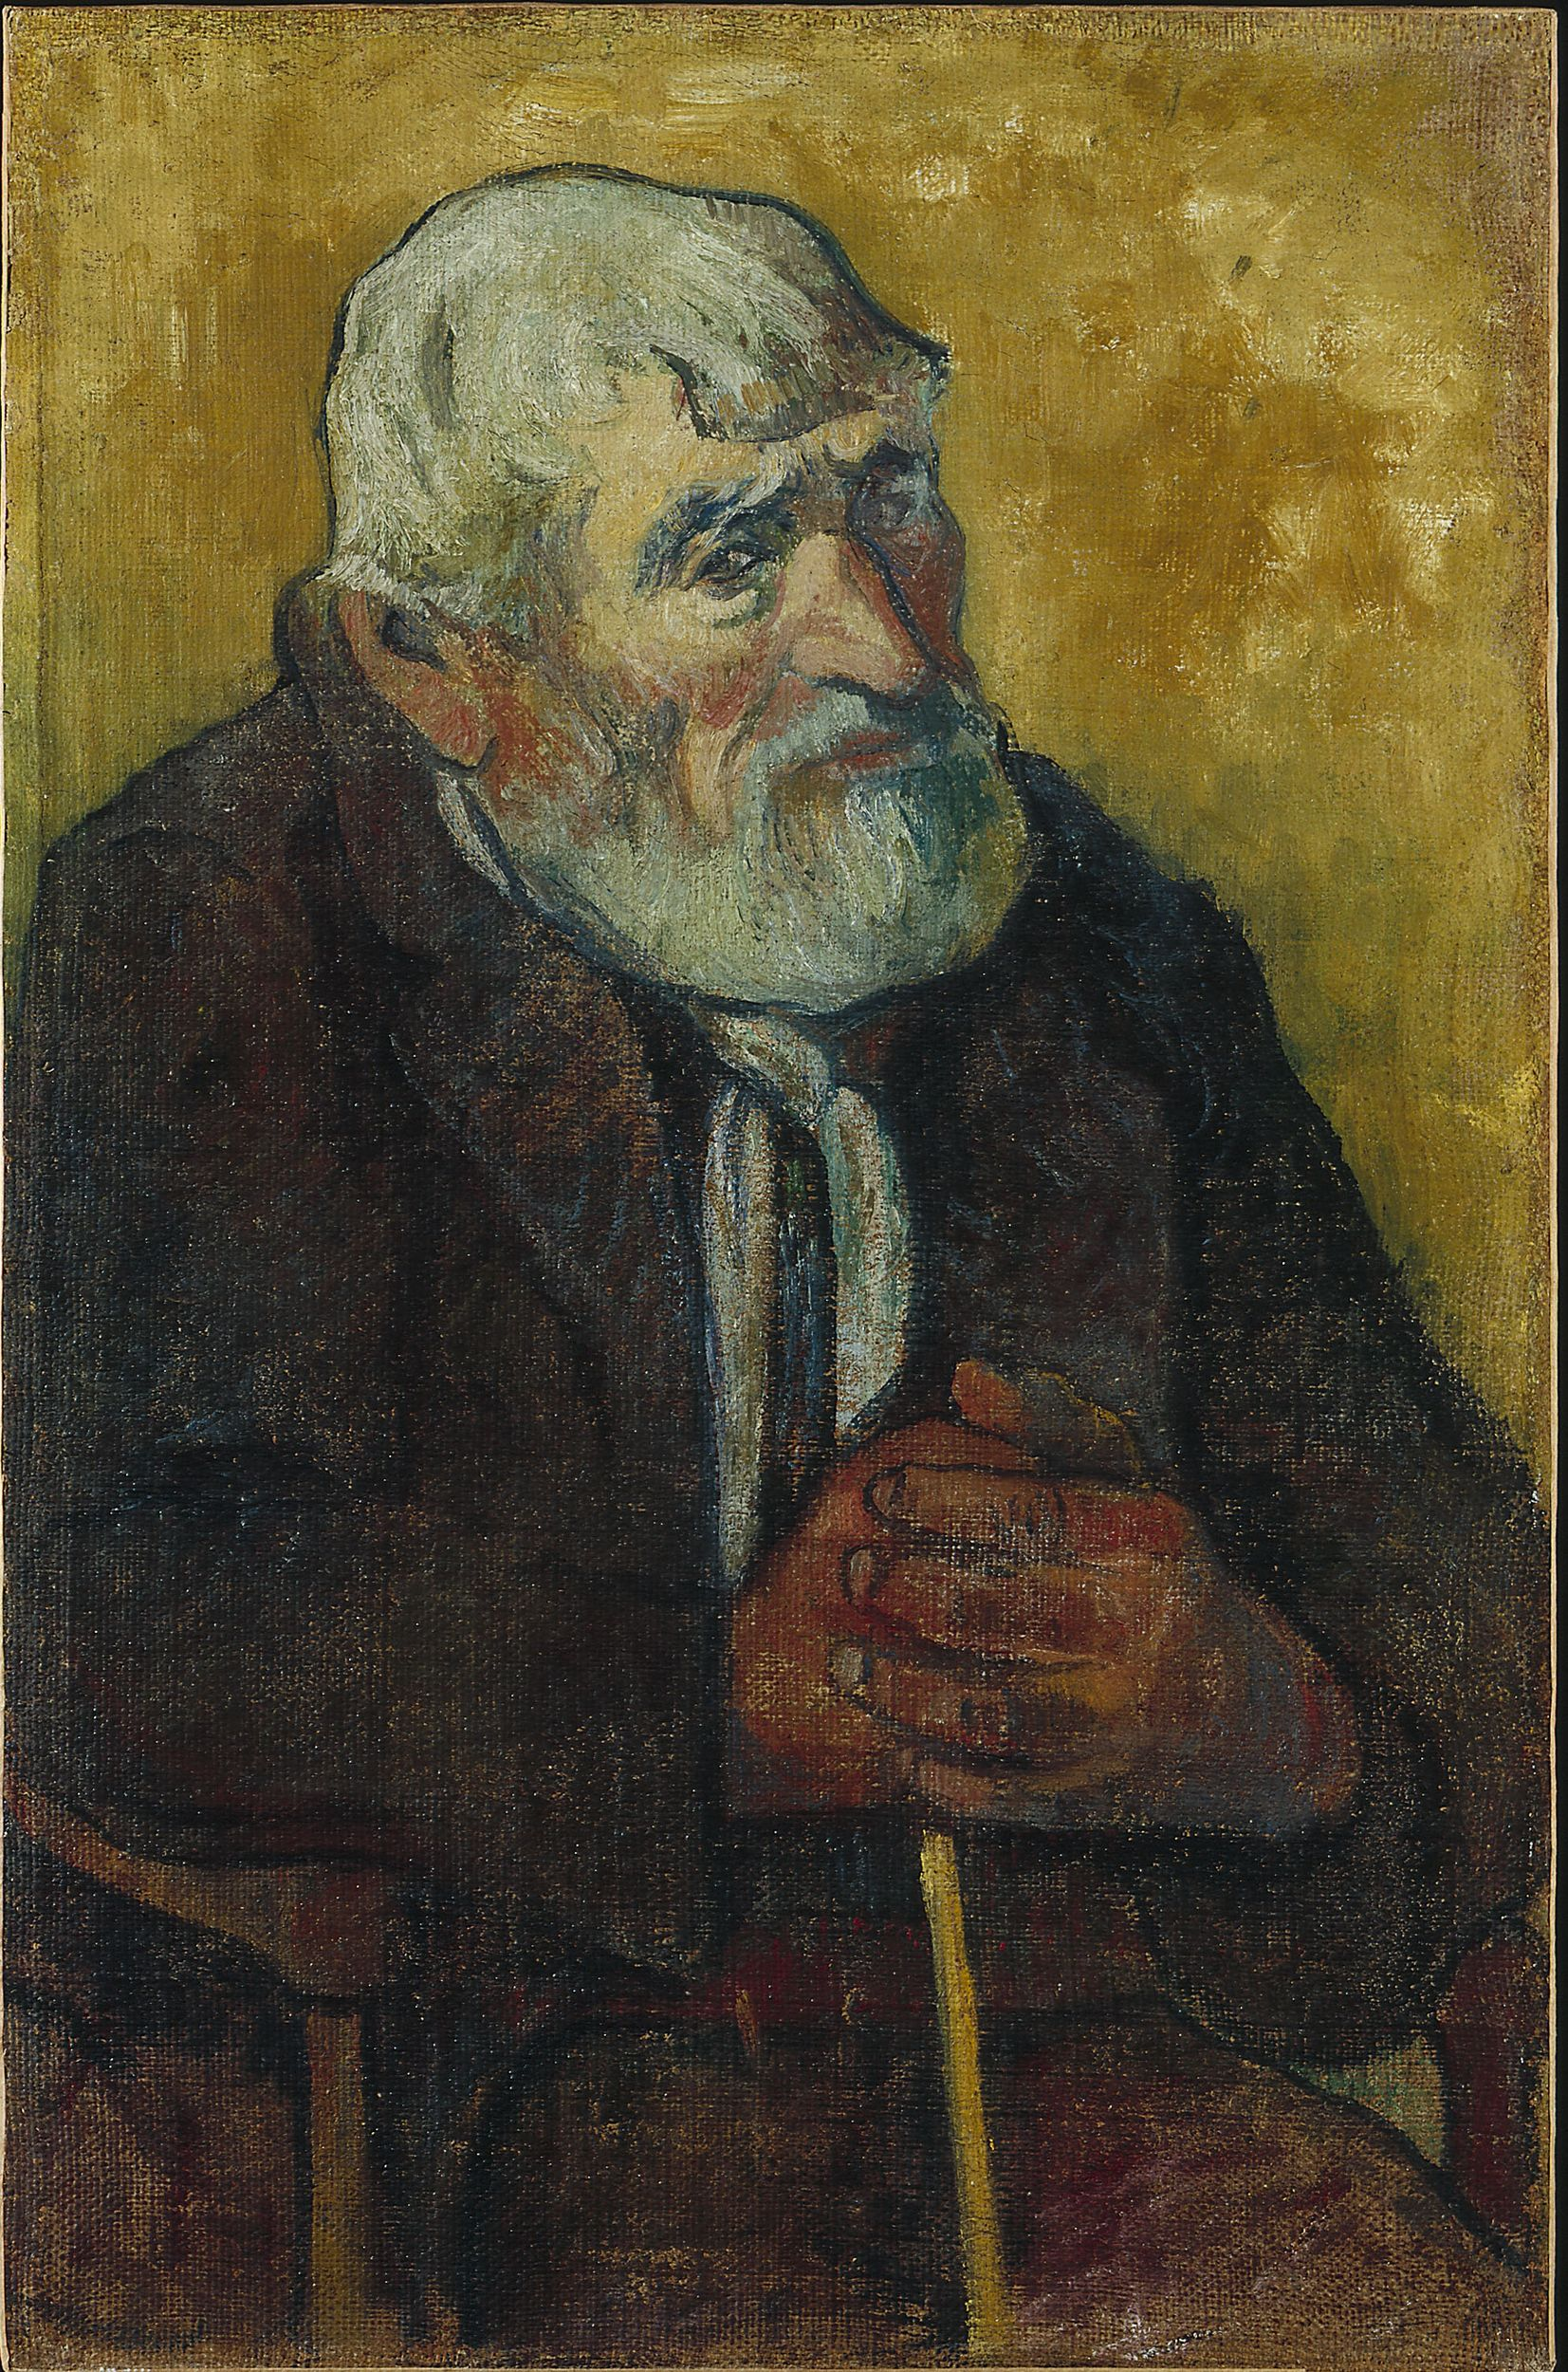 Gauguin : Old Man with a Stick